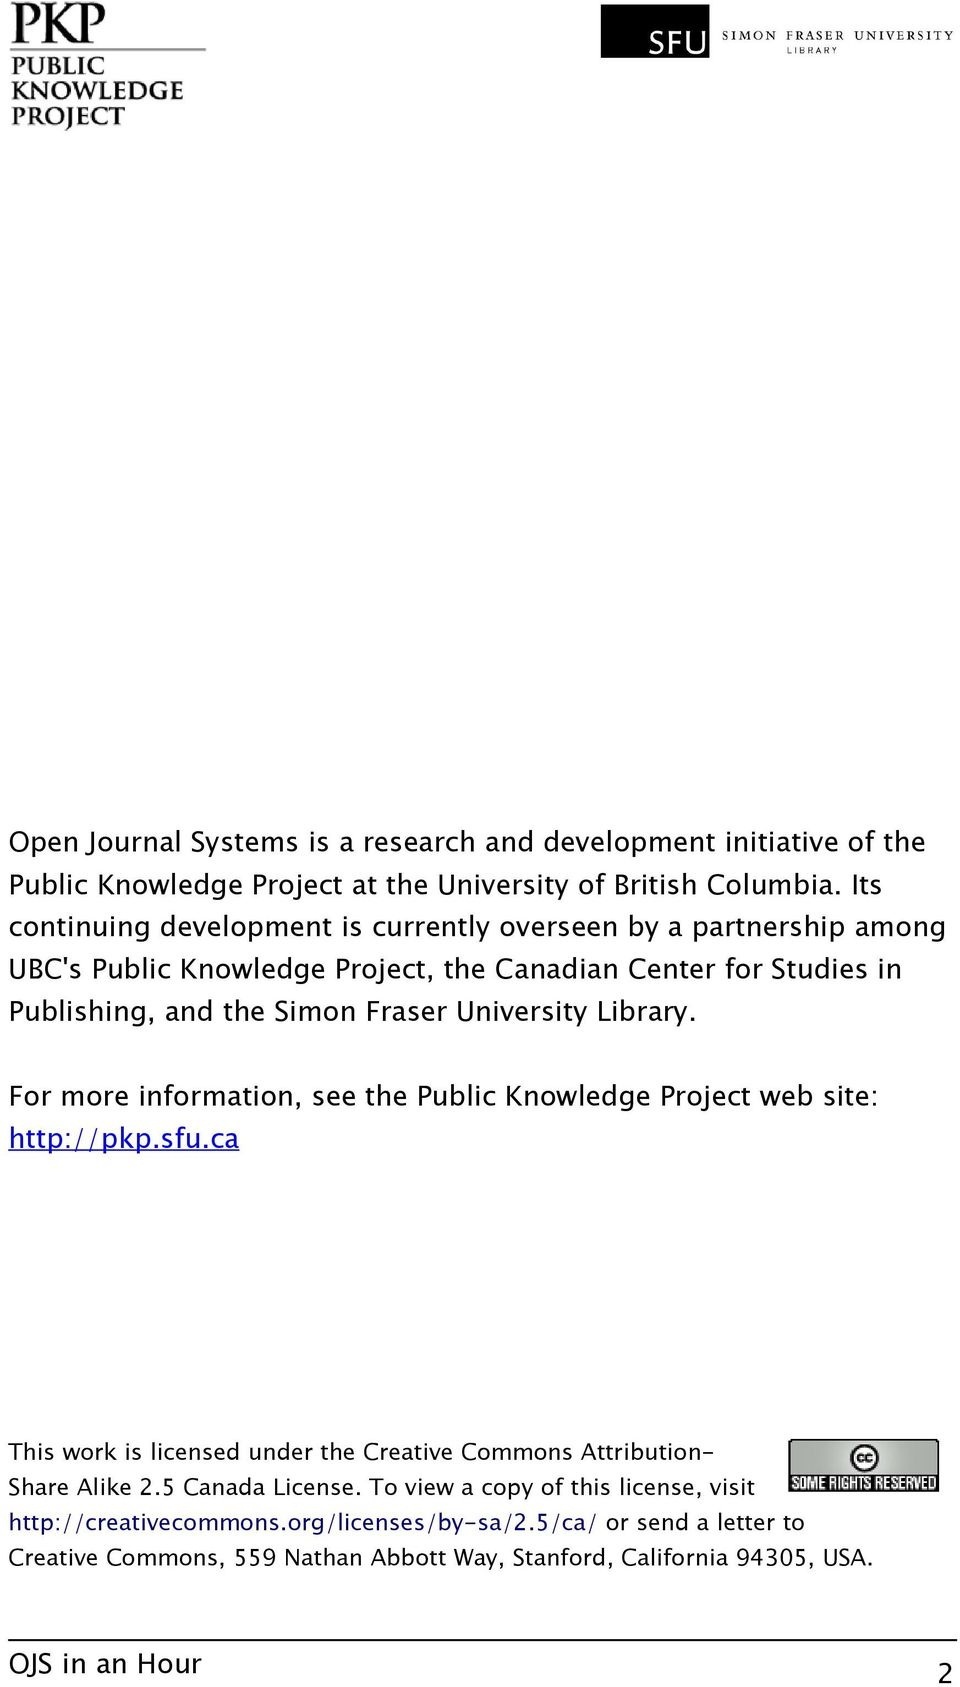 University Library. For more information, see the Public Knowledge Project web site: http://pkp.sfu.